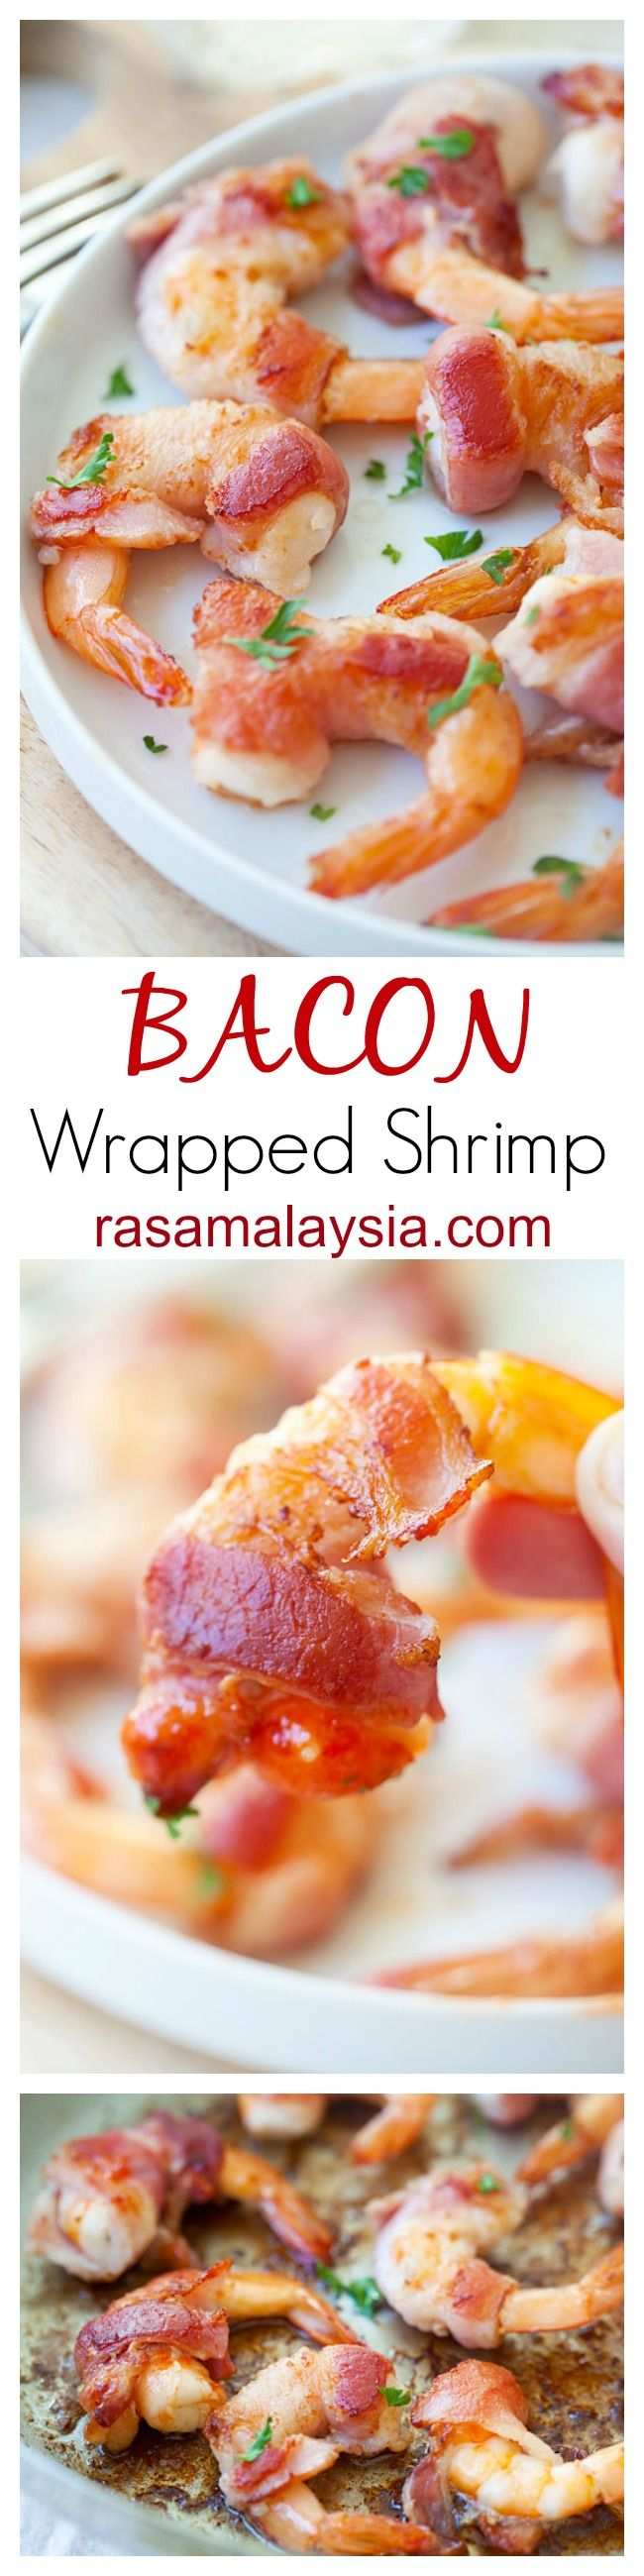 Bacon-Wrapped Shrimp is an easy recipe of wrapping shrimp with bacon and then pan-fried or grilled. This bacon-wrapped shrimp recipe is a crowd pleaser   rasamalaysia.com